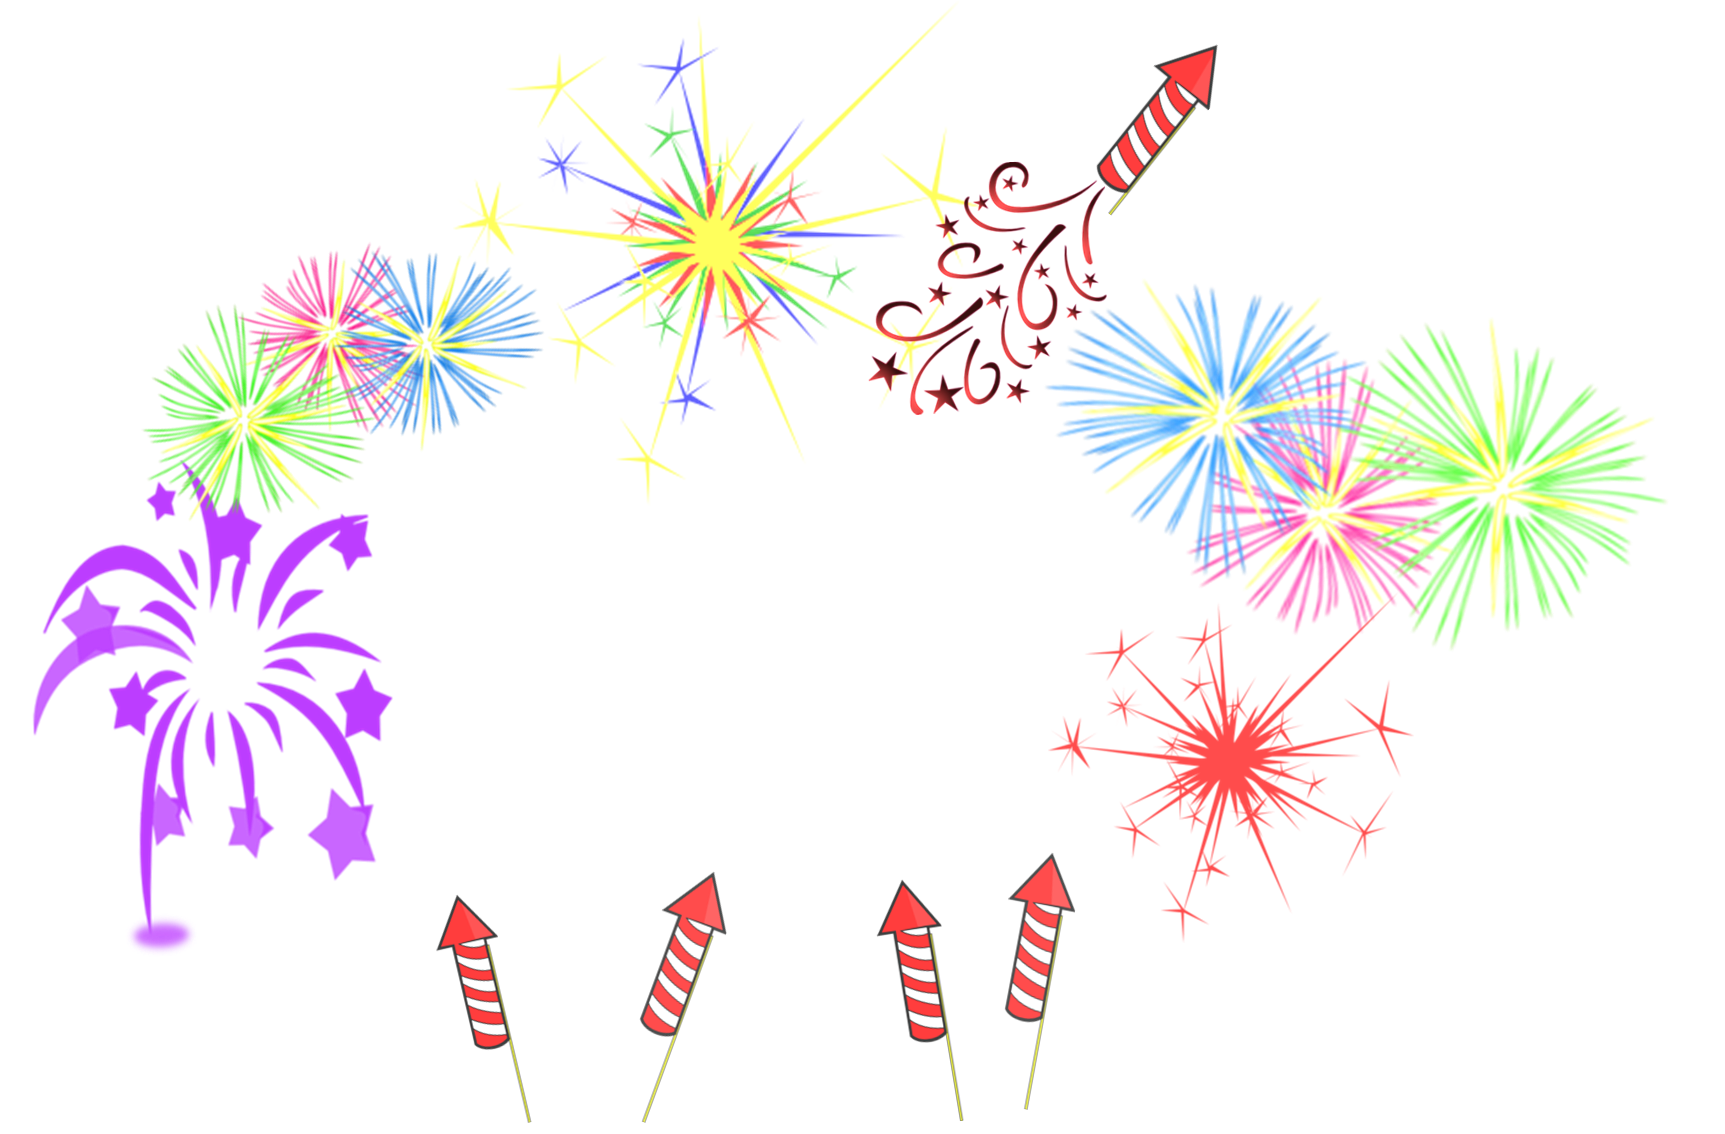 Clipart fireworks confetti. Frame free images at